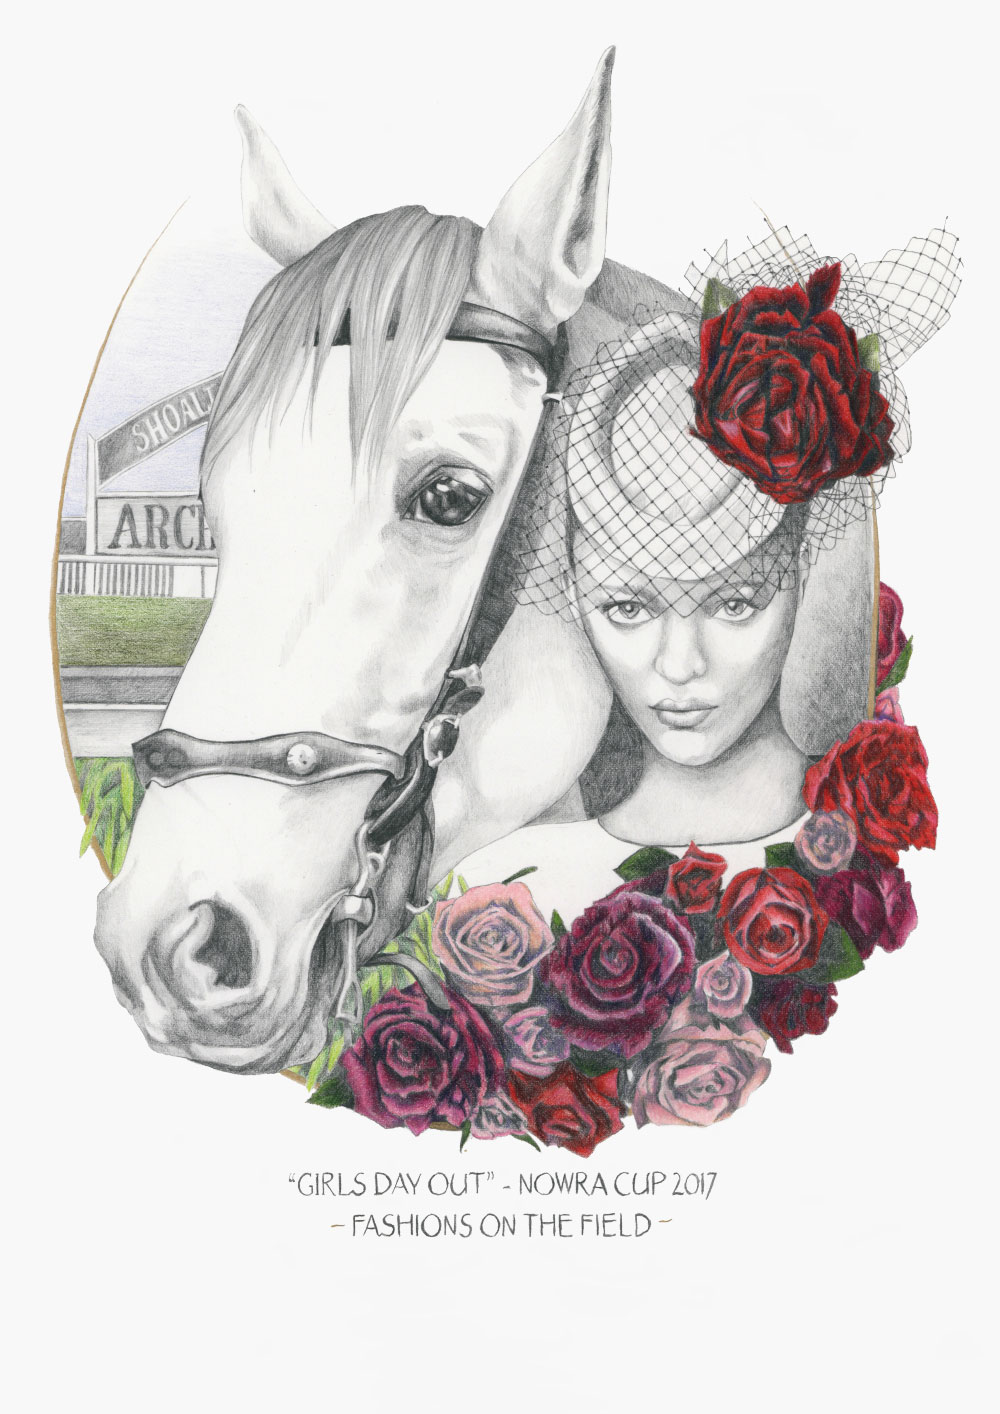 Fashion illustration of fashions on the field Nowra Cup 2017